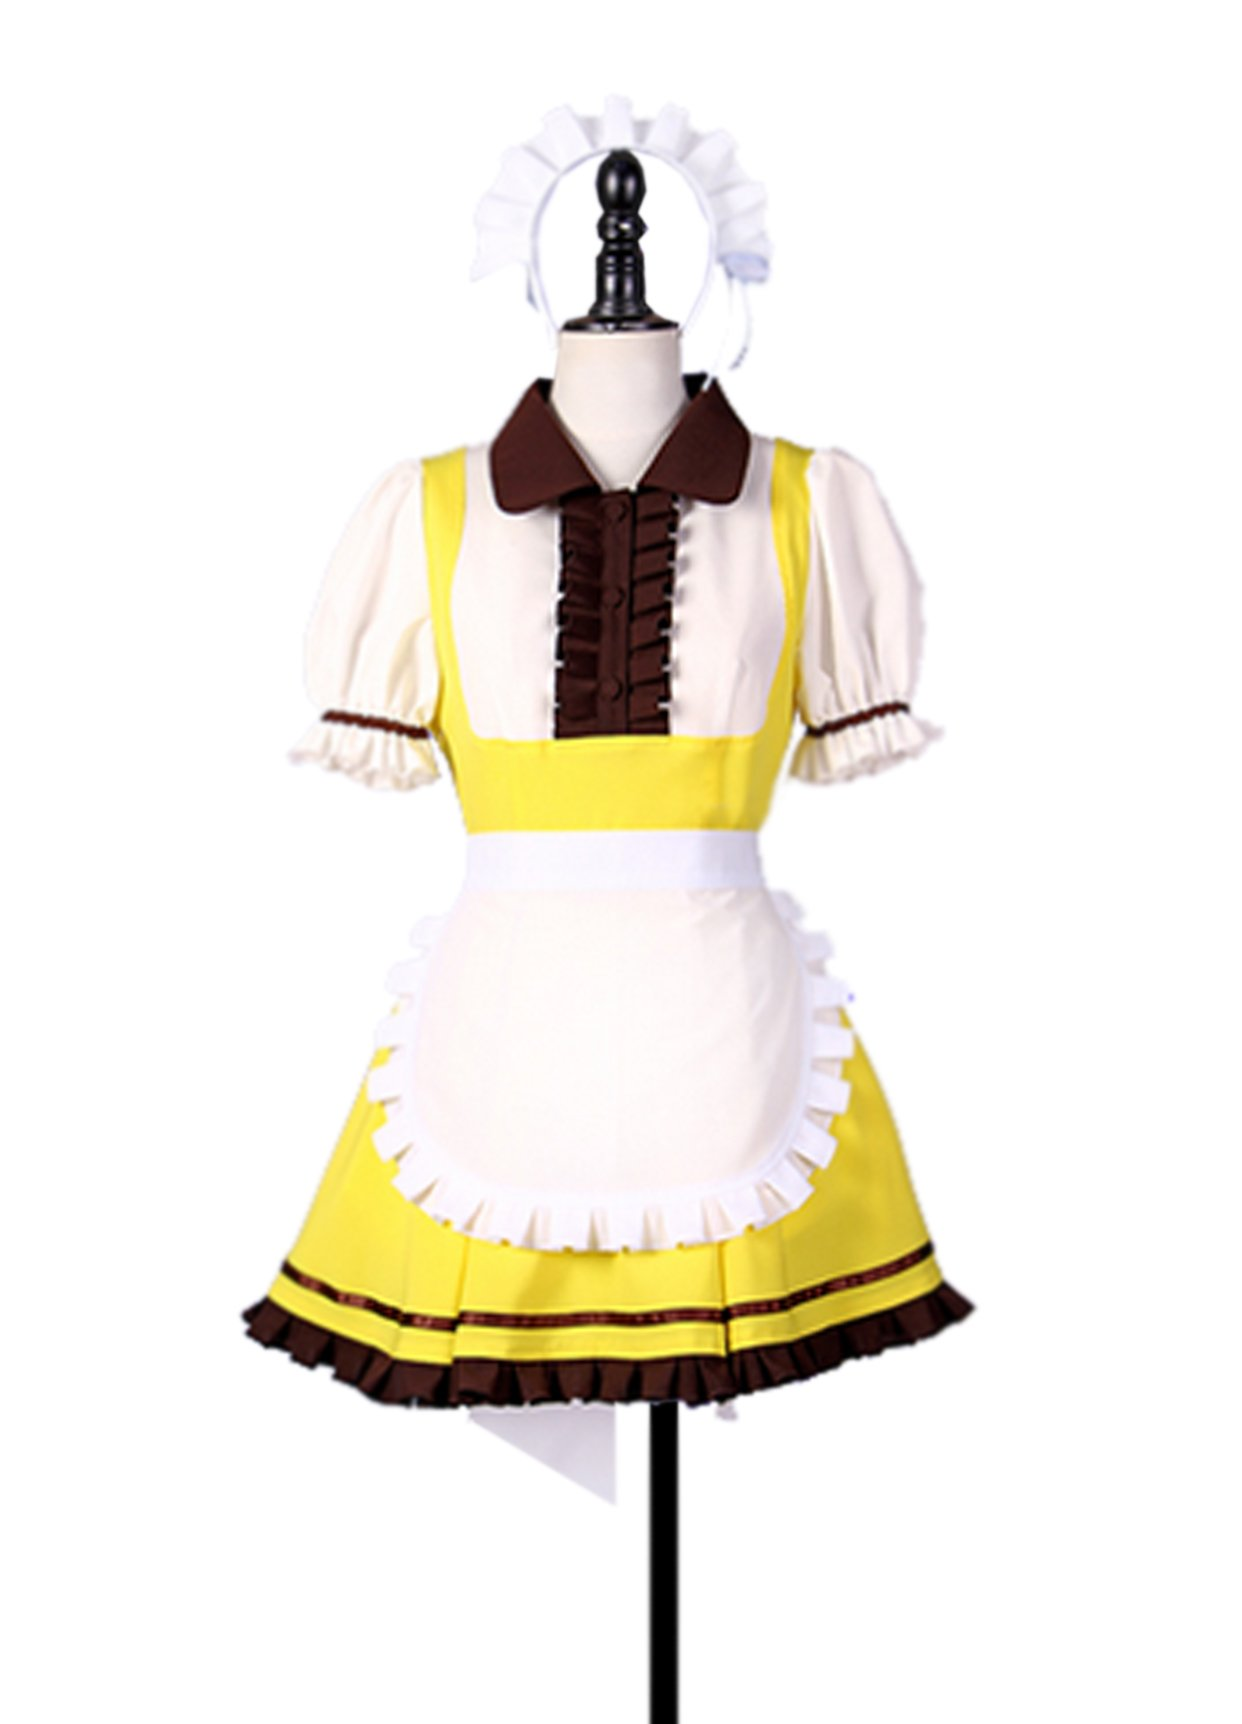 Dreamcosplay Animation Love live Ayase Eli Cake Maid Outfits Cosplay